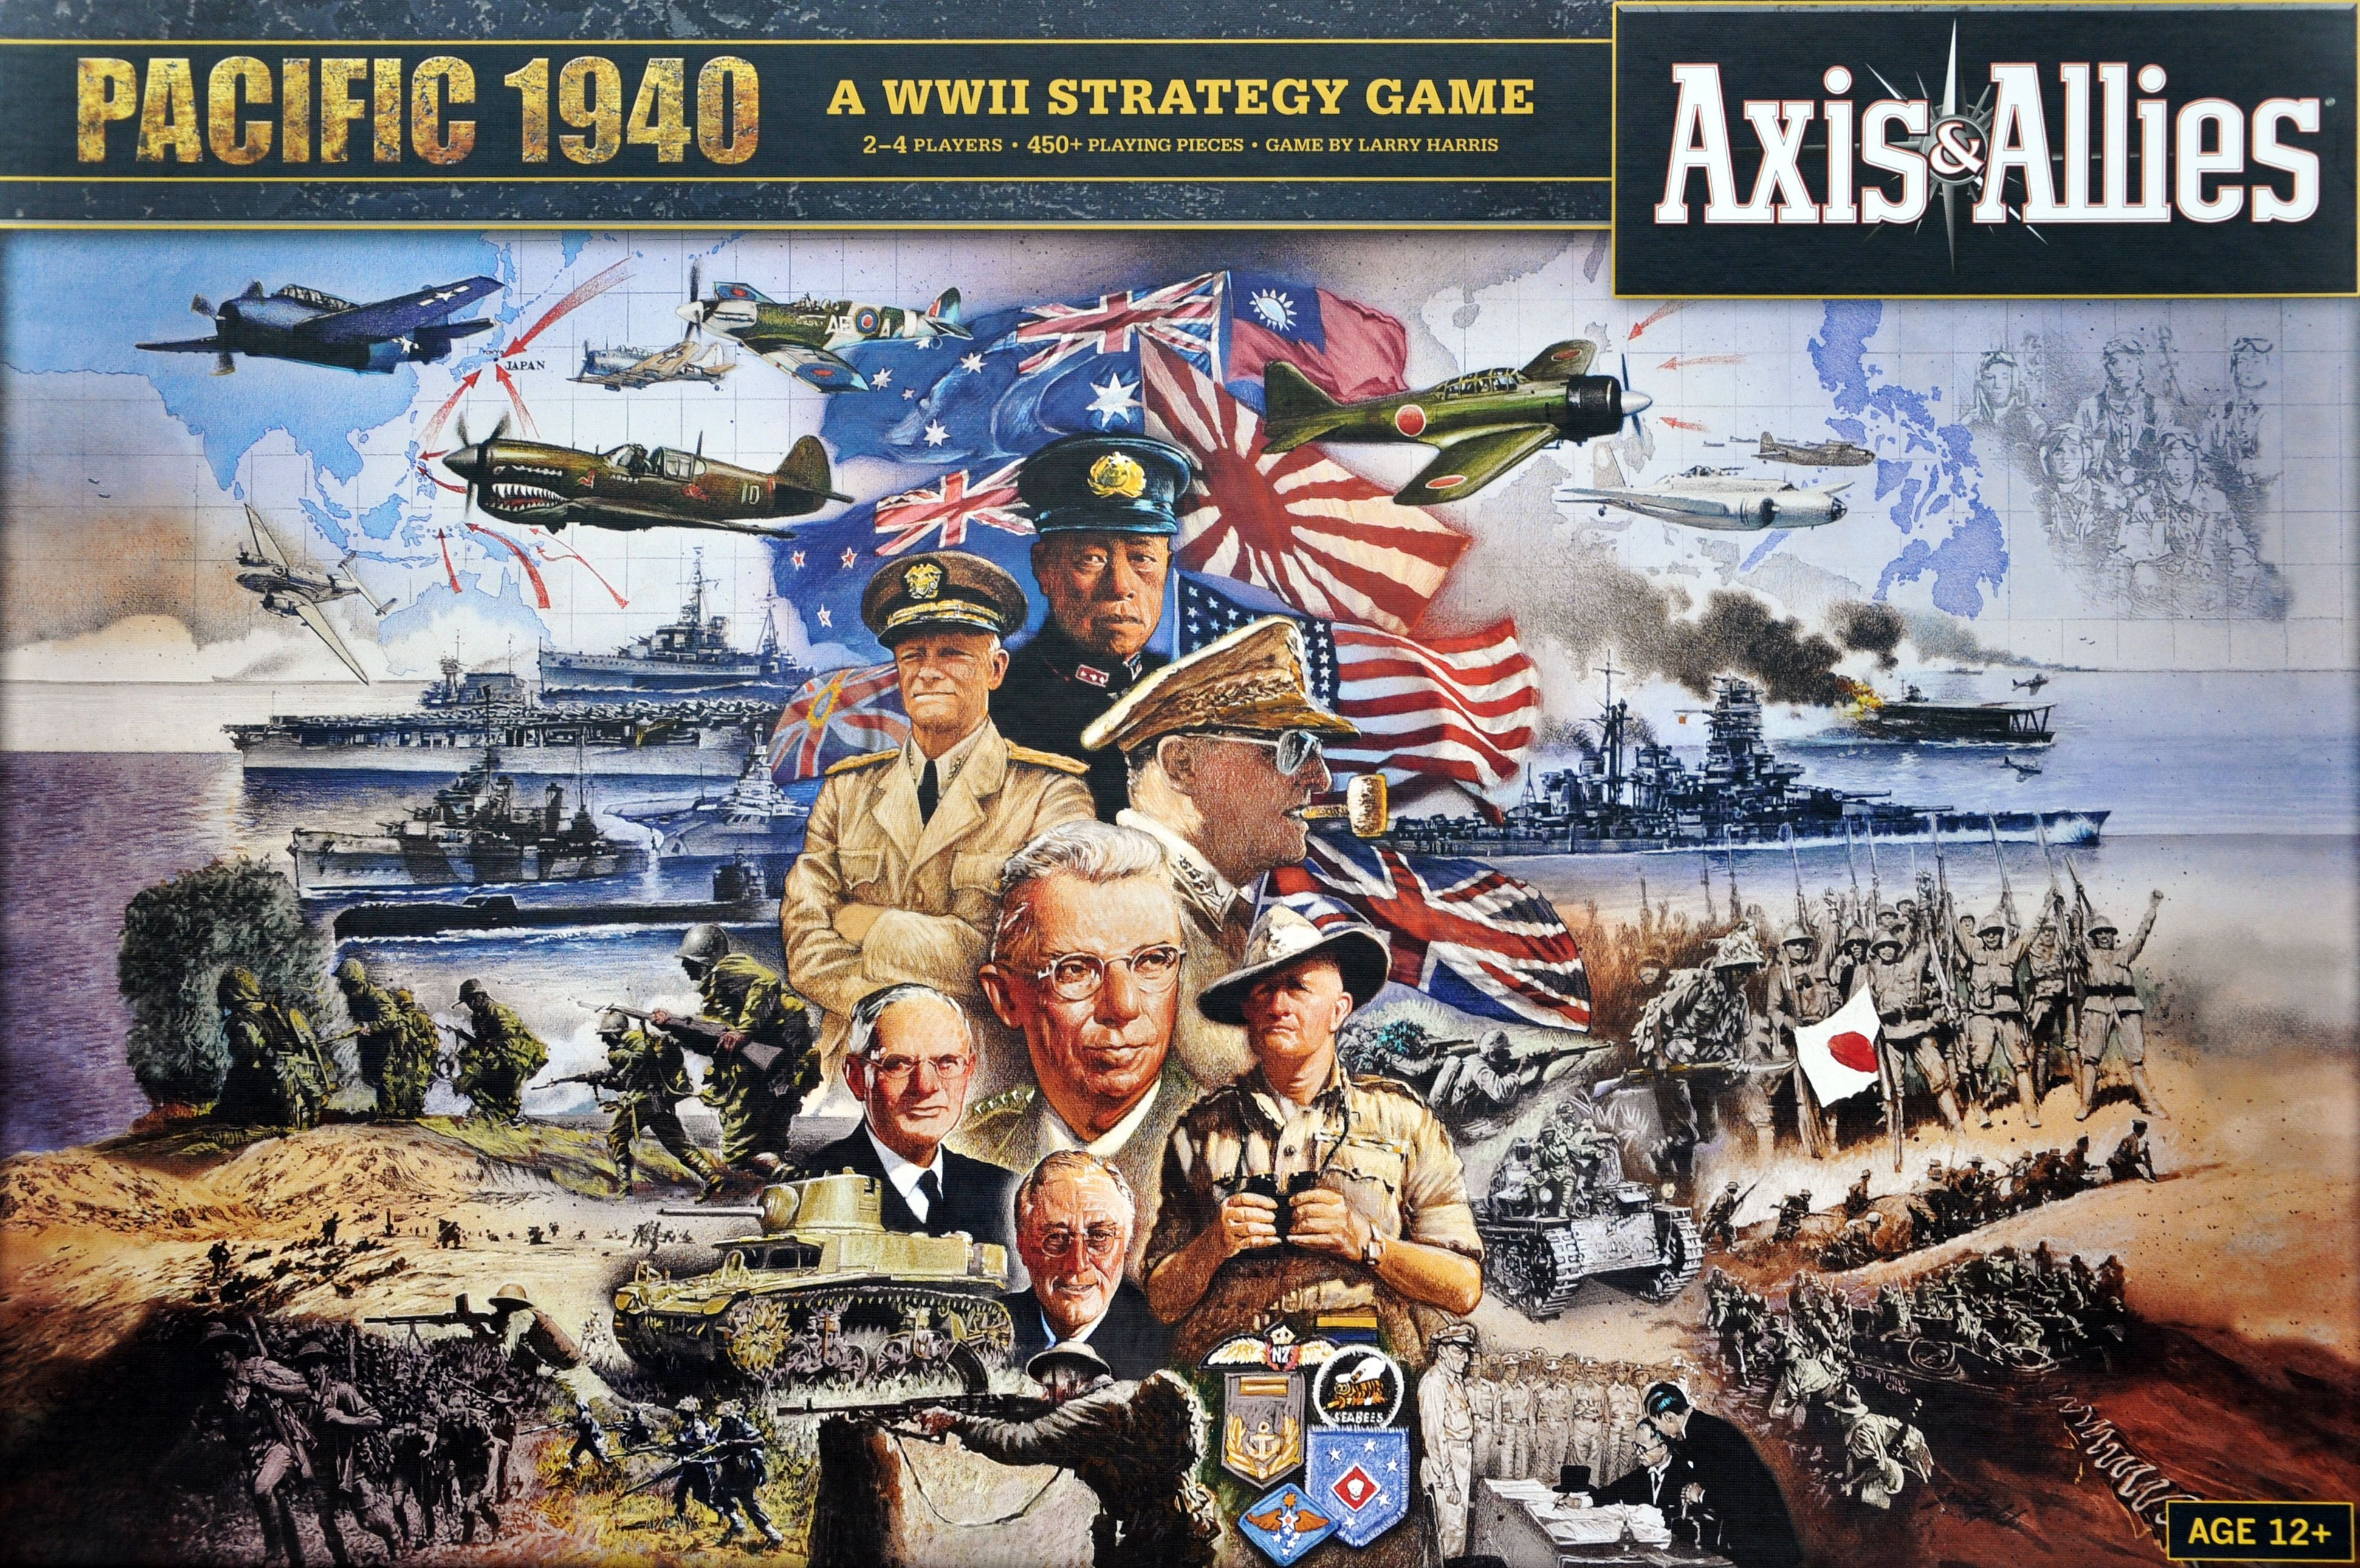 Main image for Axis & Allies Pacific 1940 board game